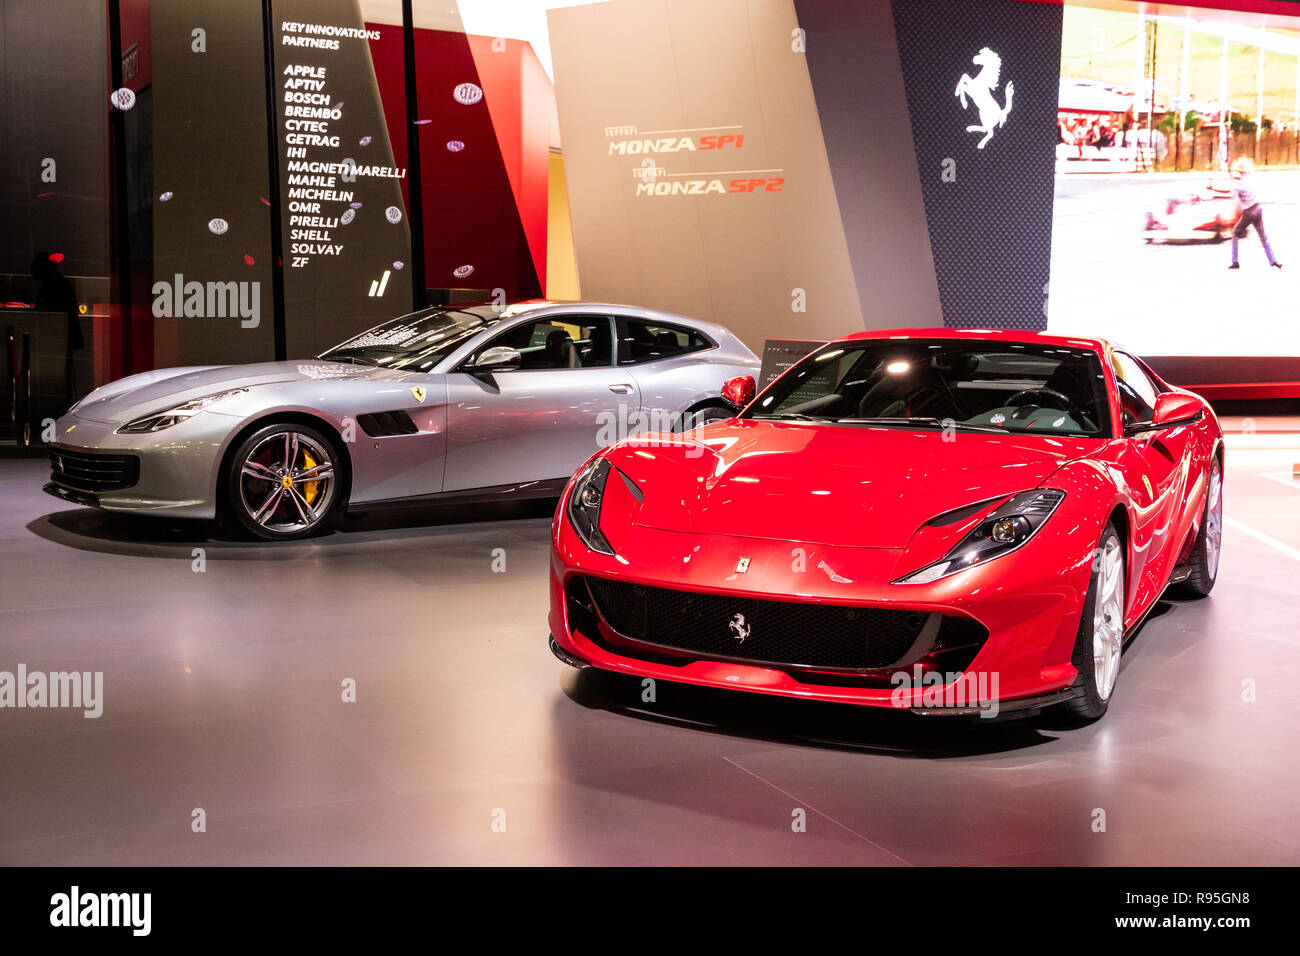 Ferrari 812 Superfast Stock Photos Ferrari 812 Superfast Stock